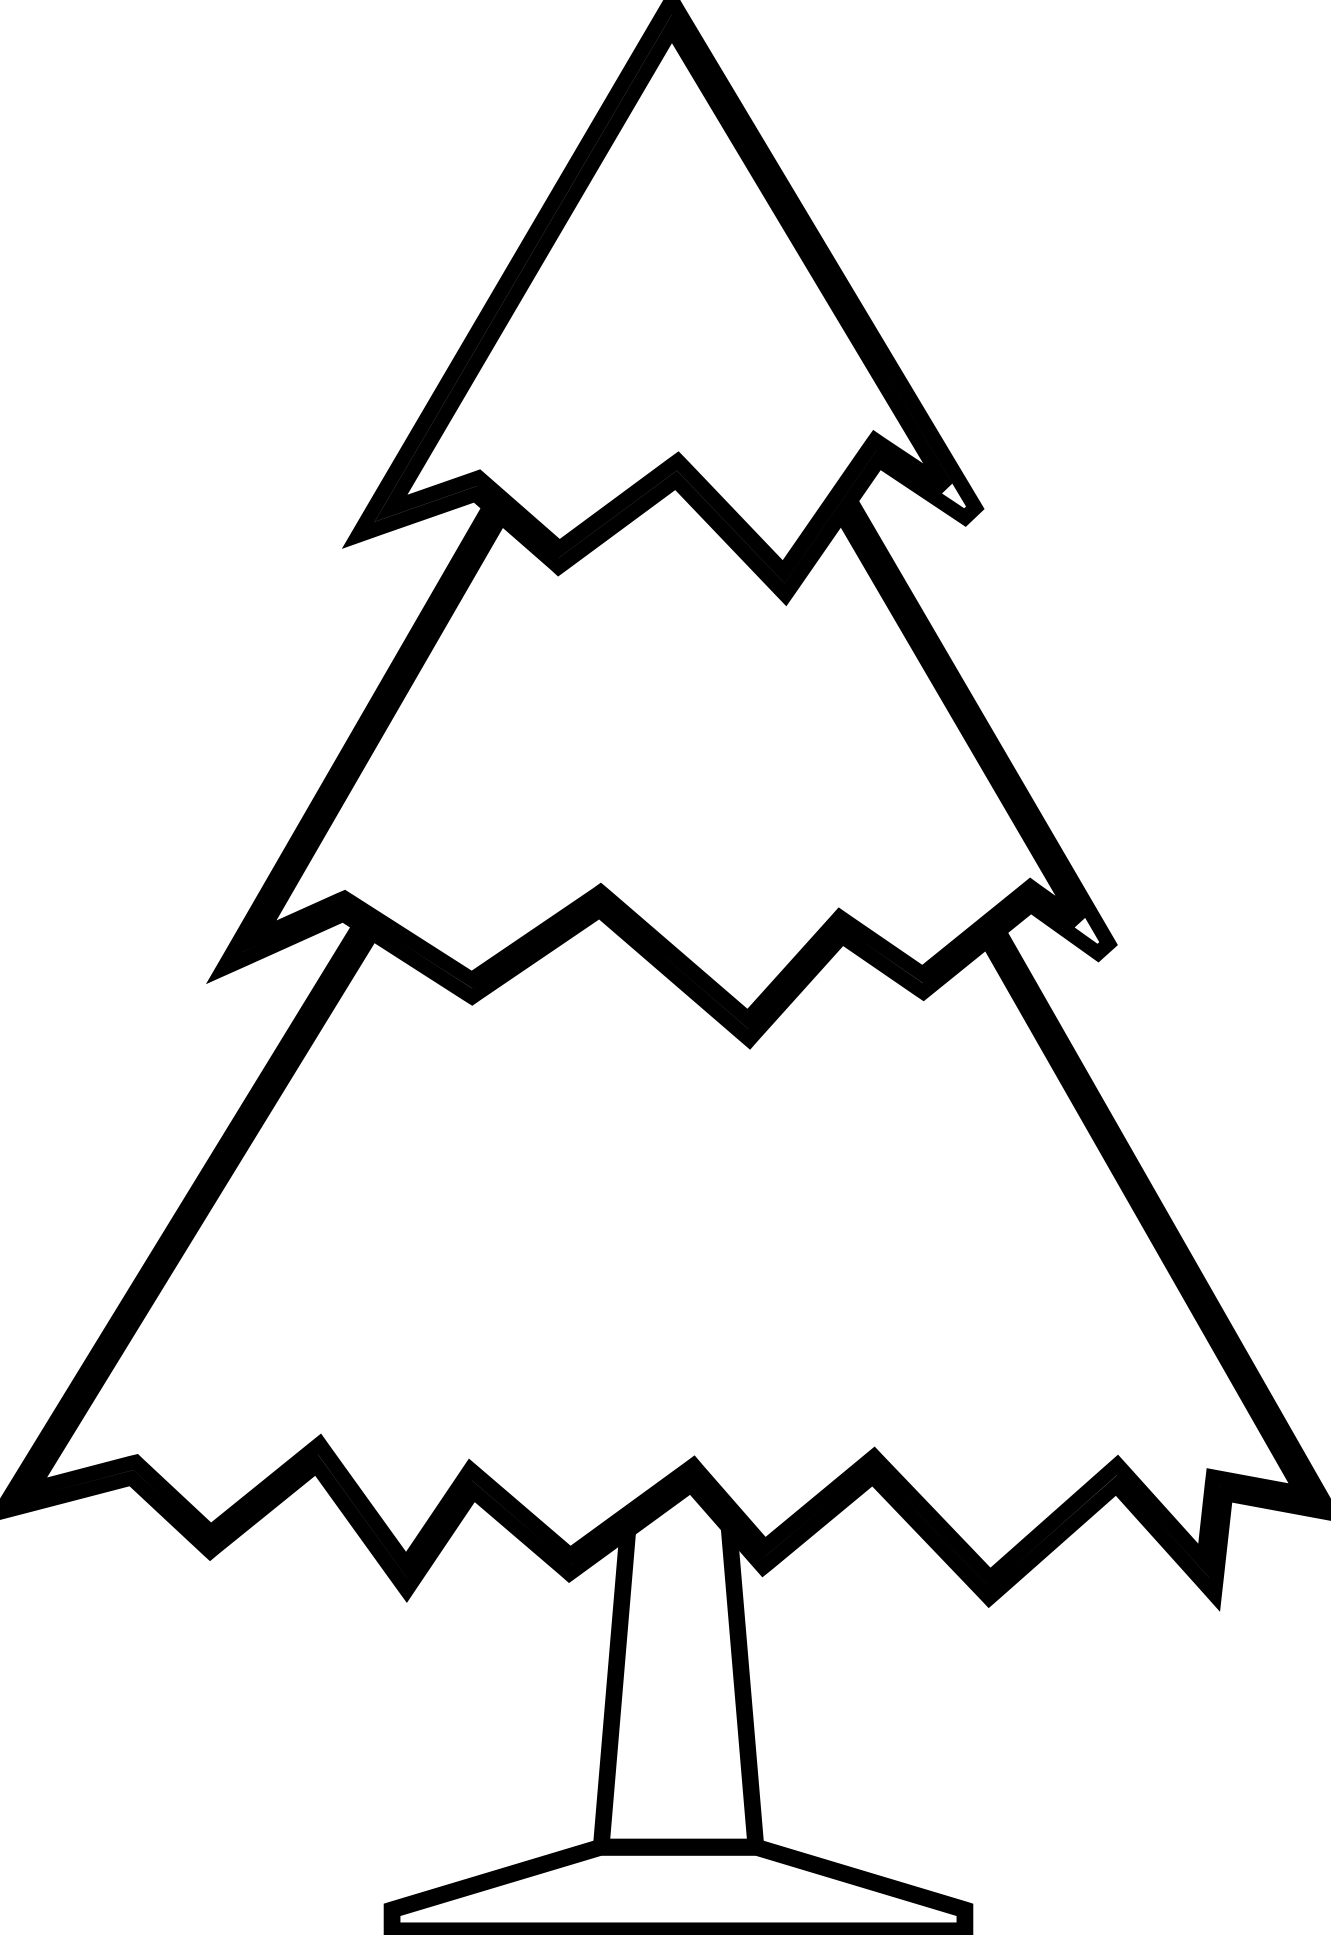 Triangle objects great blank. Winter clipart black and white